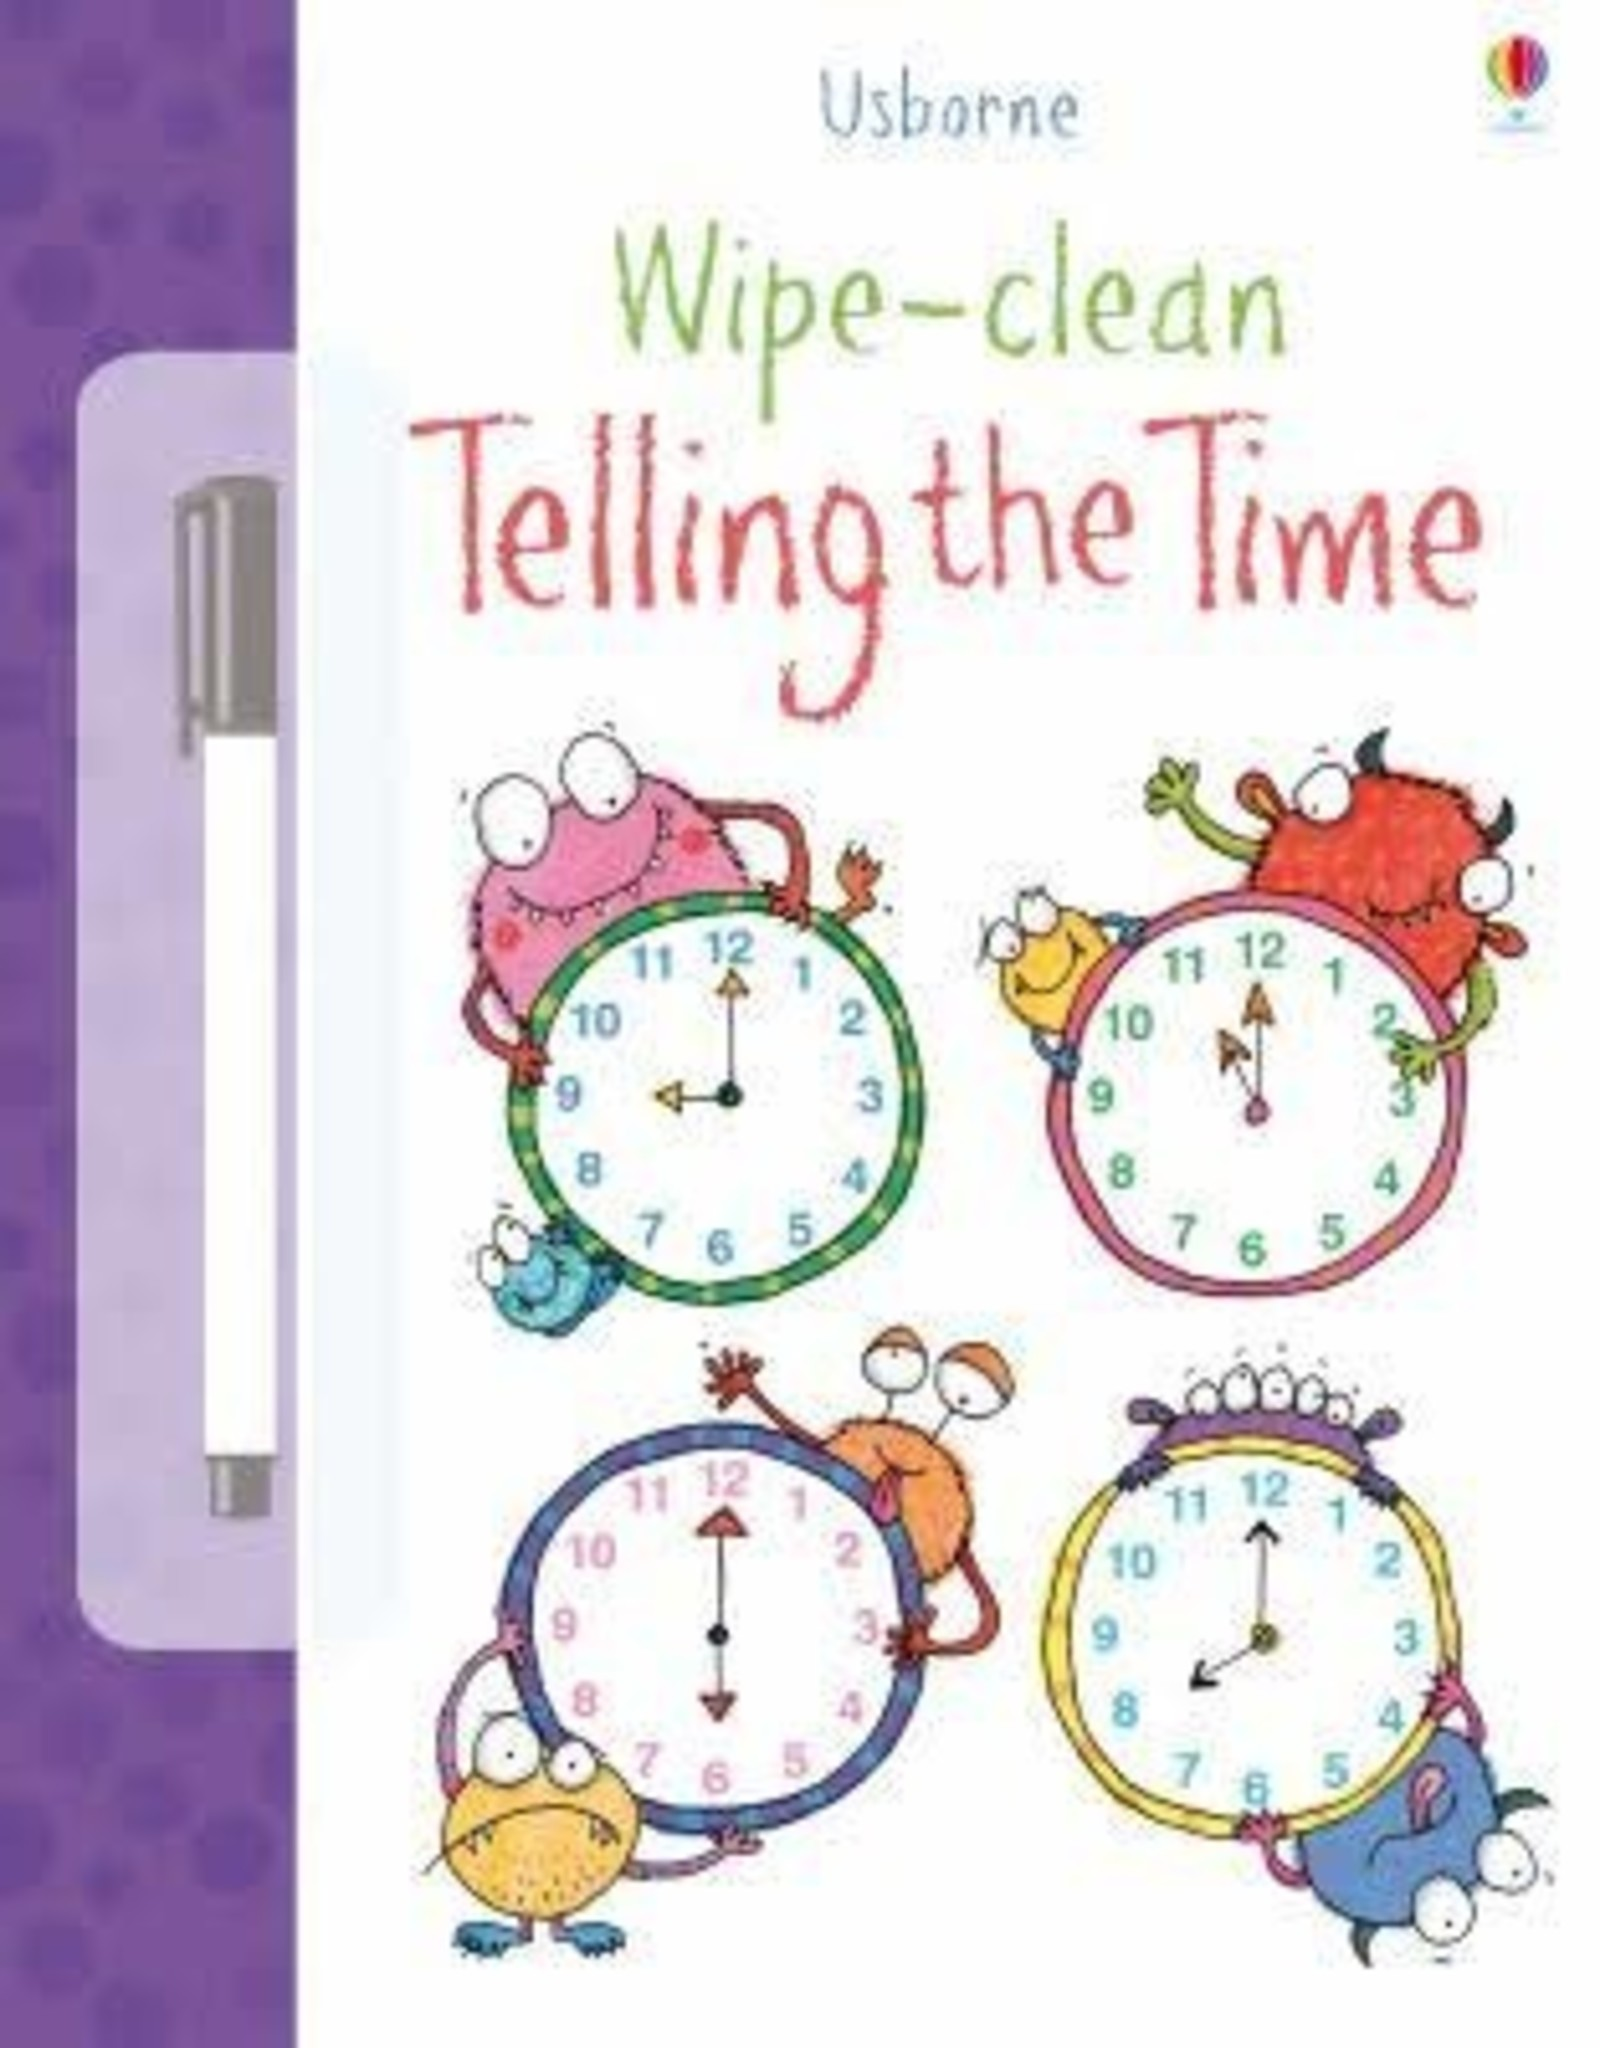 Usborne Usborne Wipe-Clean Telling the Time